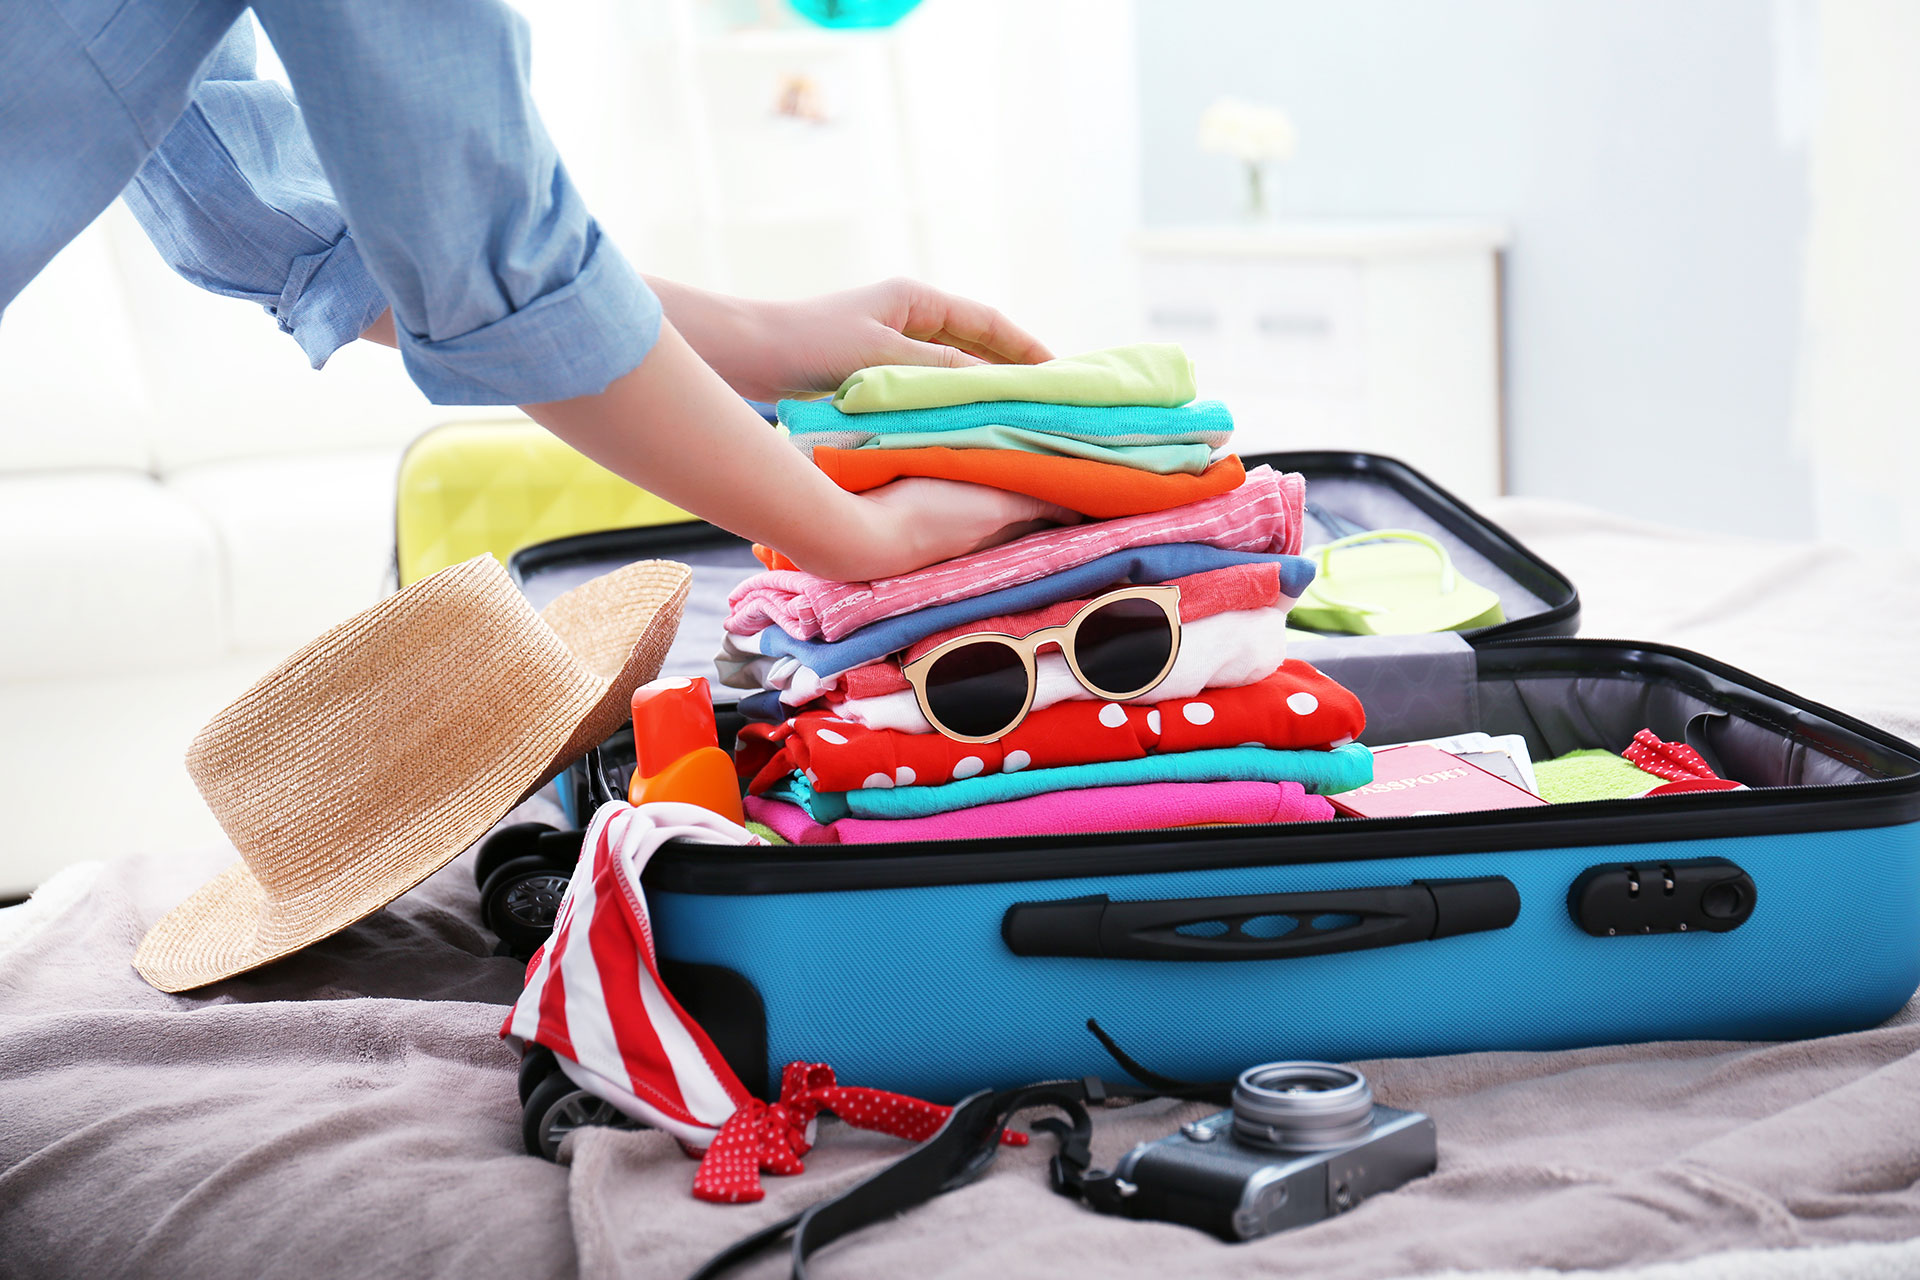 Packing Suitcases for Vacation